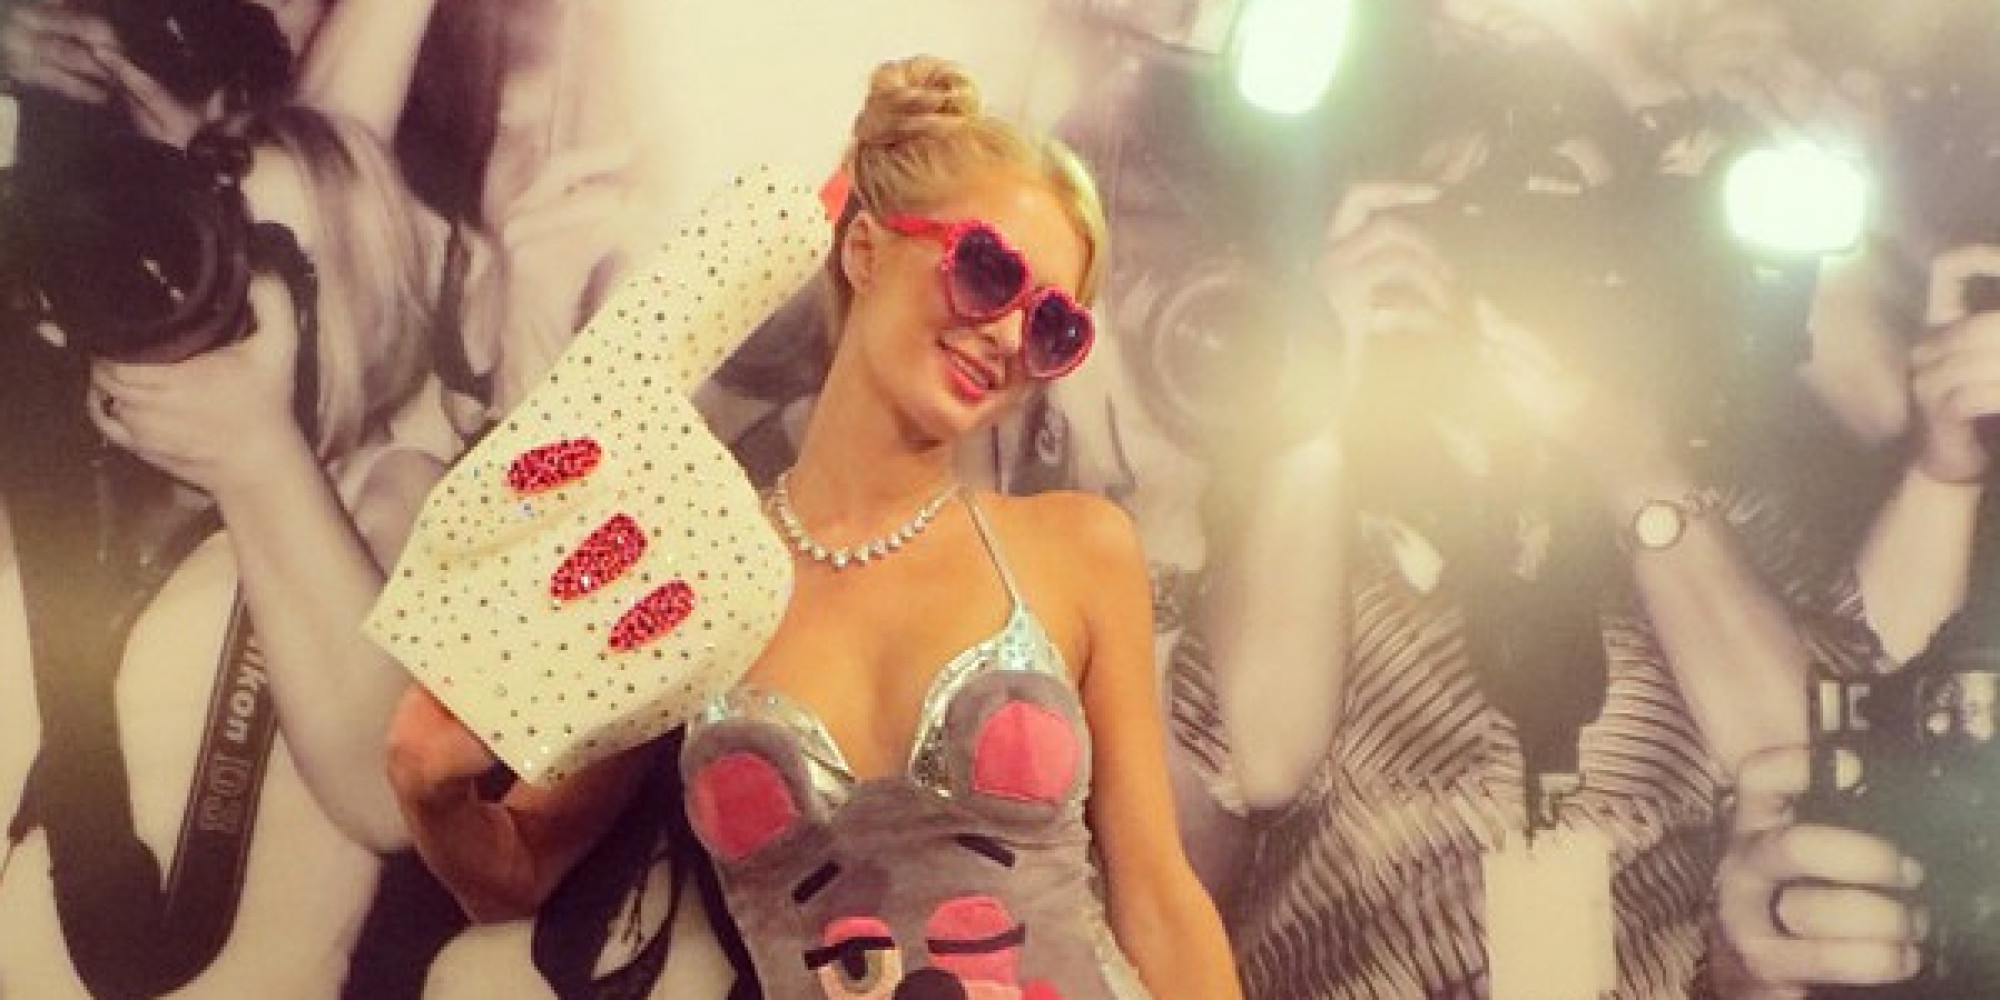 Paris Hilton se disfraza de Miley Cyrus (FOTOS): voces.huffingtonpost.com/2013/10/27/paris-hilton-miley-cyrus...